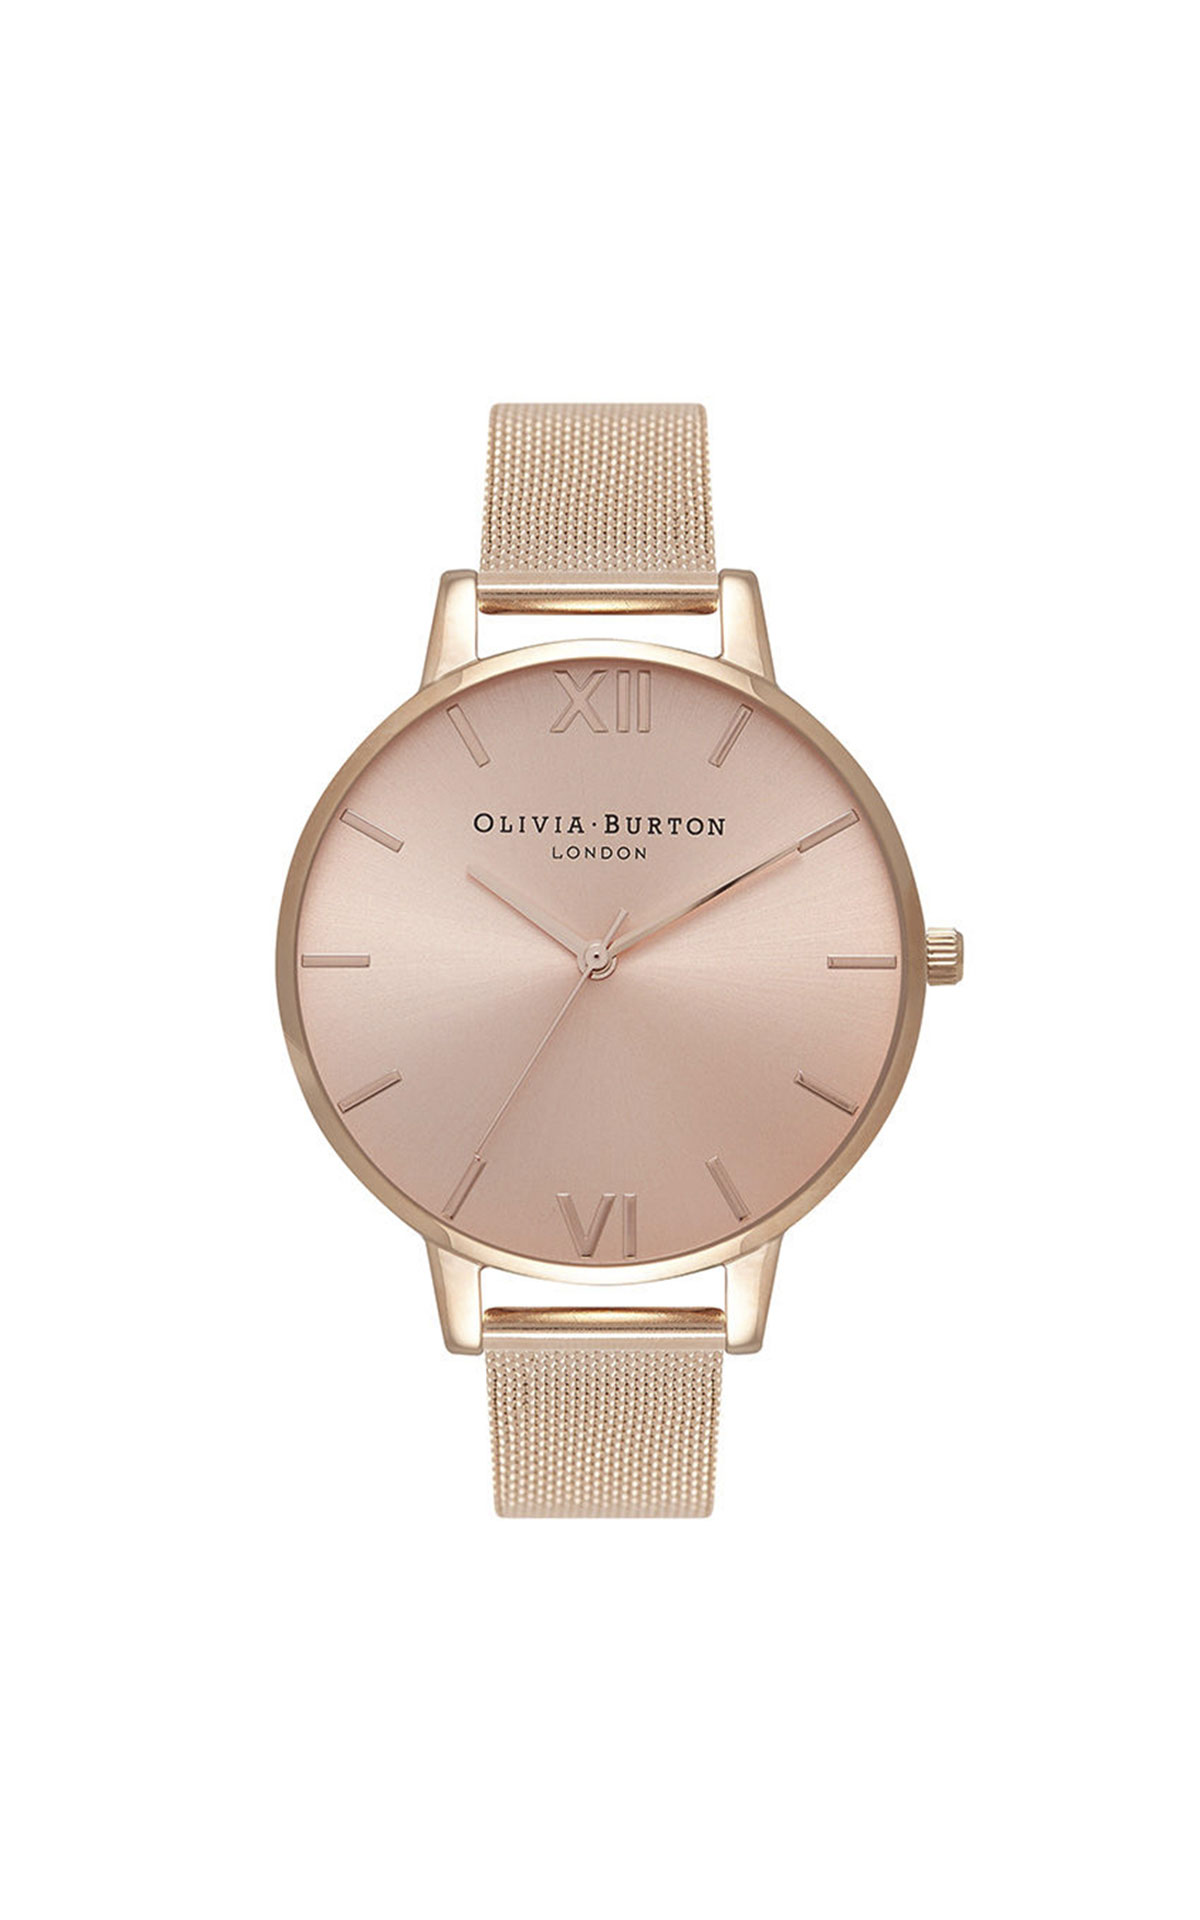 Olivia Burton Sunray rose gold mesh watch from Bicester Village